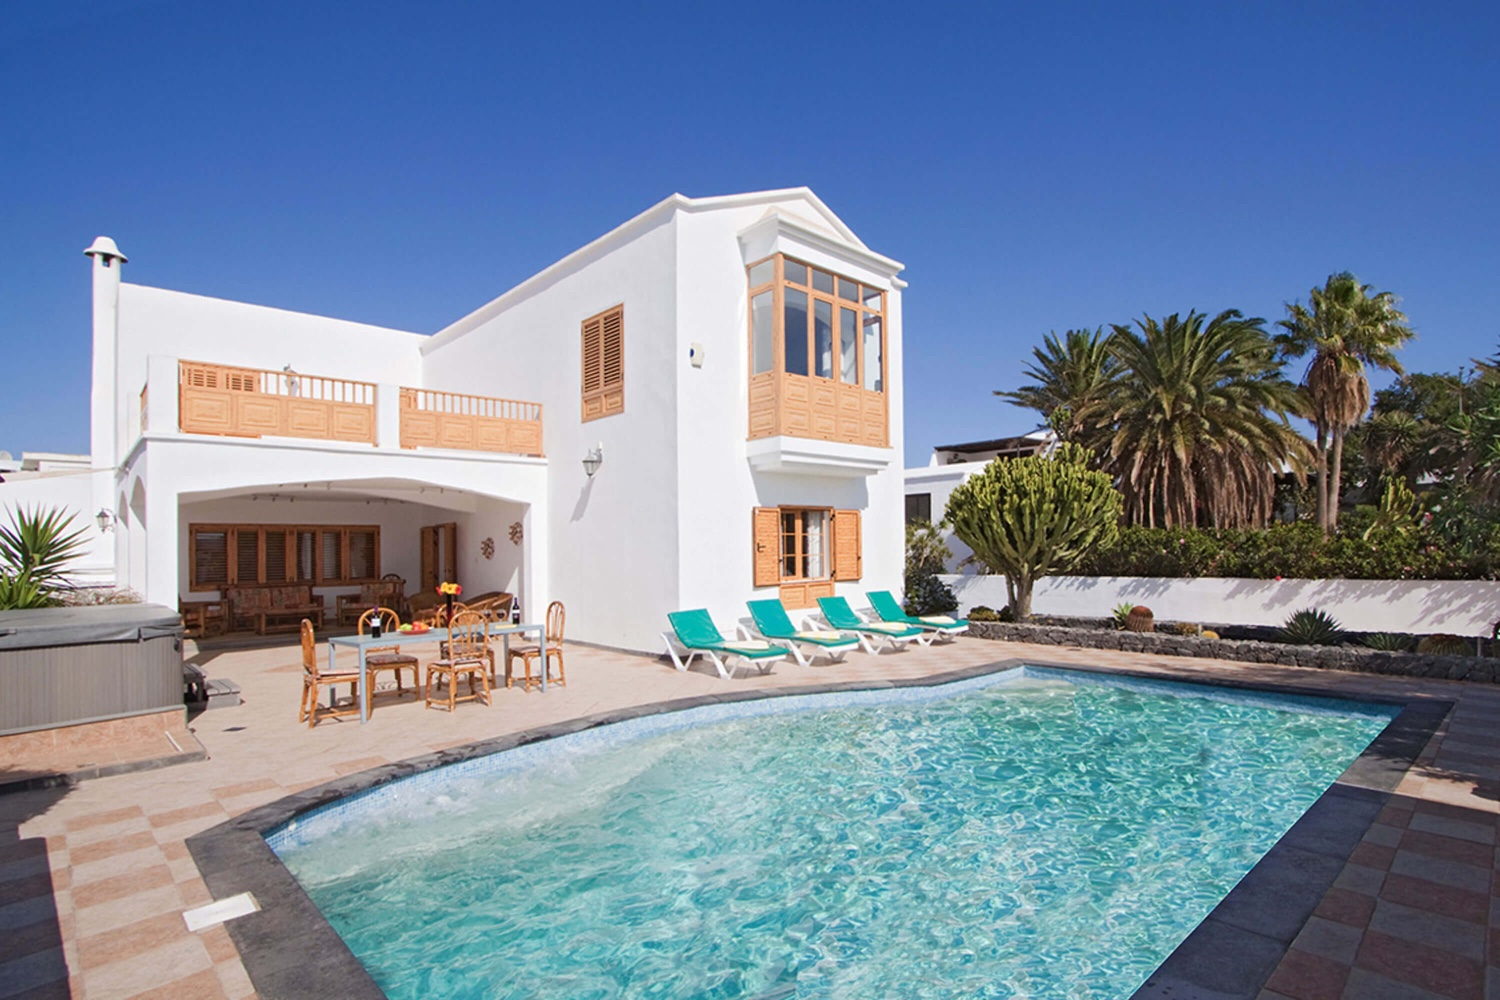 Spacious villa with private pool for a relaxing holiday with the whole family in Puerto del Carmen, in the south of Lanzarote